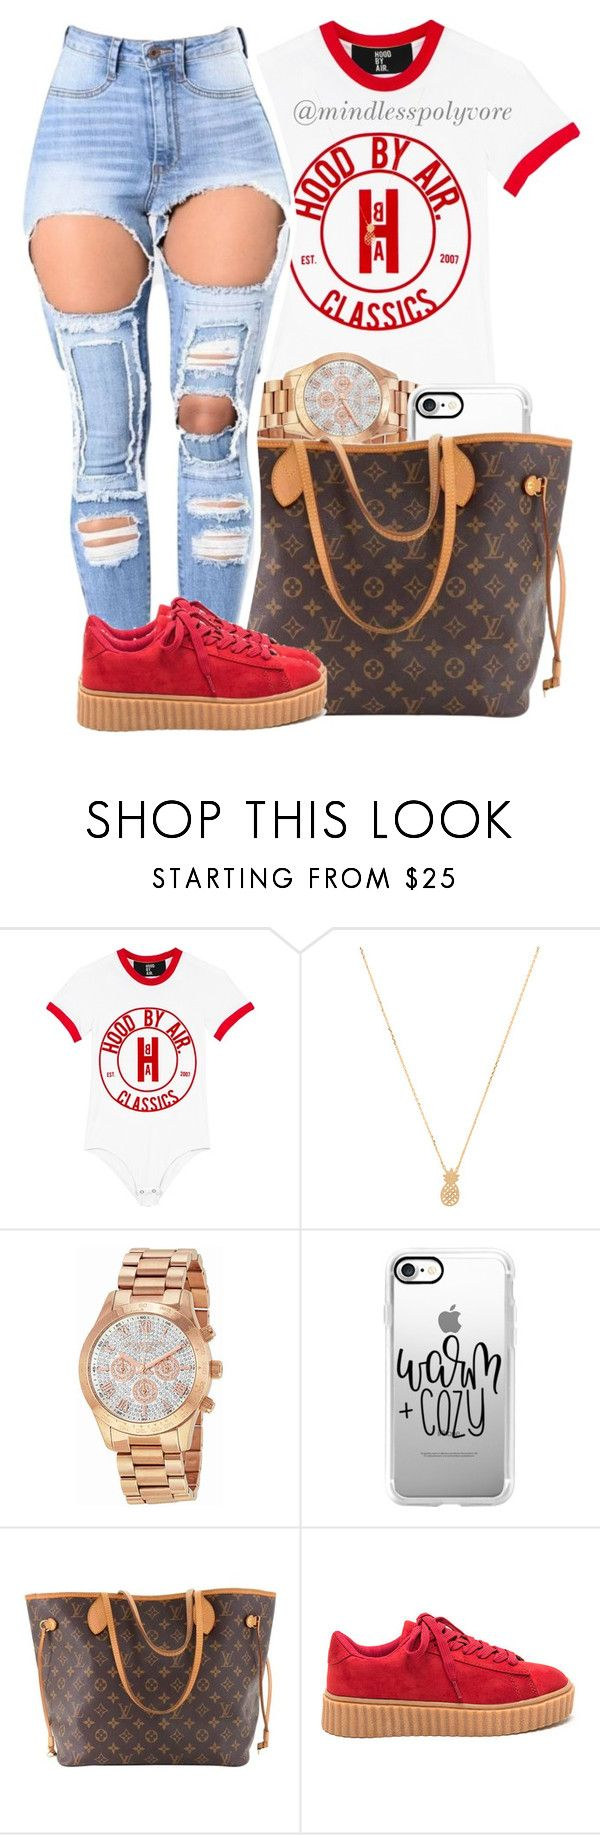 """"""" Two in the morning ain't late enough we gone be here til' the sun shows up """" by mindlesspolyvore ❤ liked on Polyvore featuring Wanderlust + Co, Michael Kors, Casetify and Louis Vuitton"""